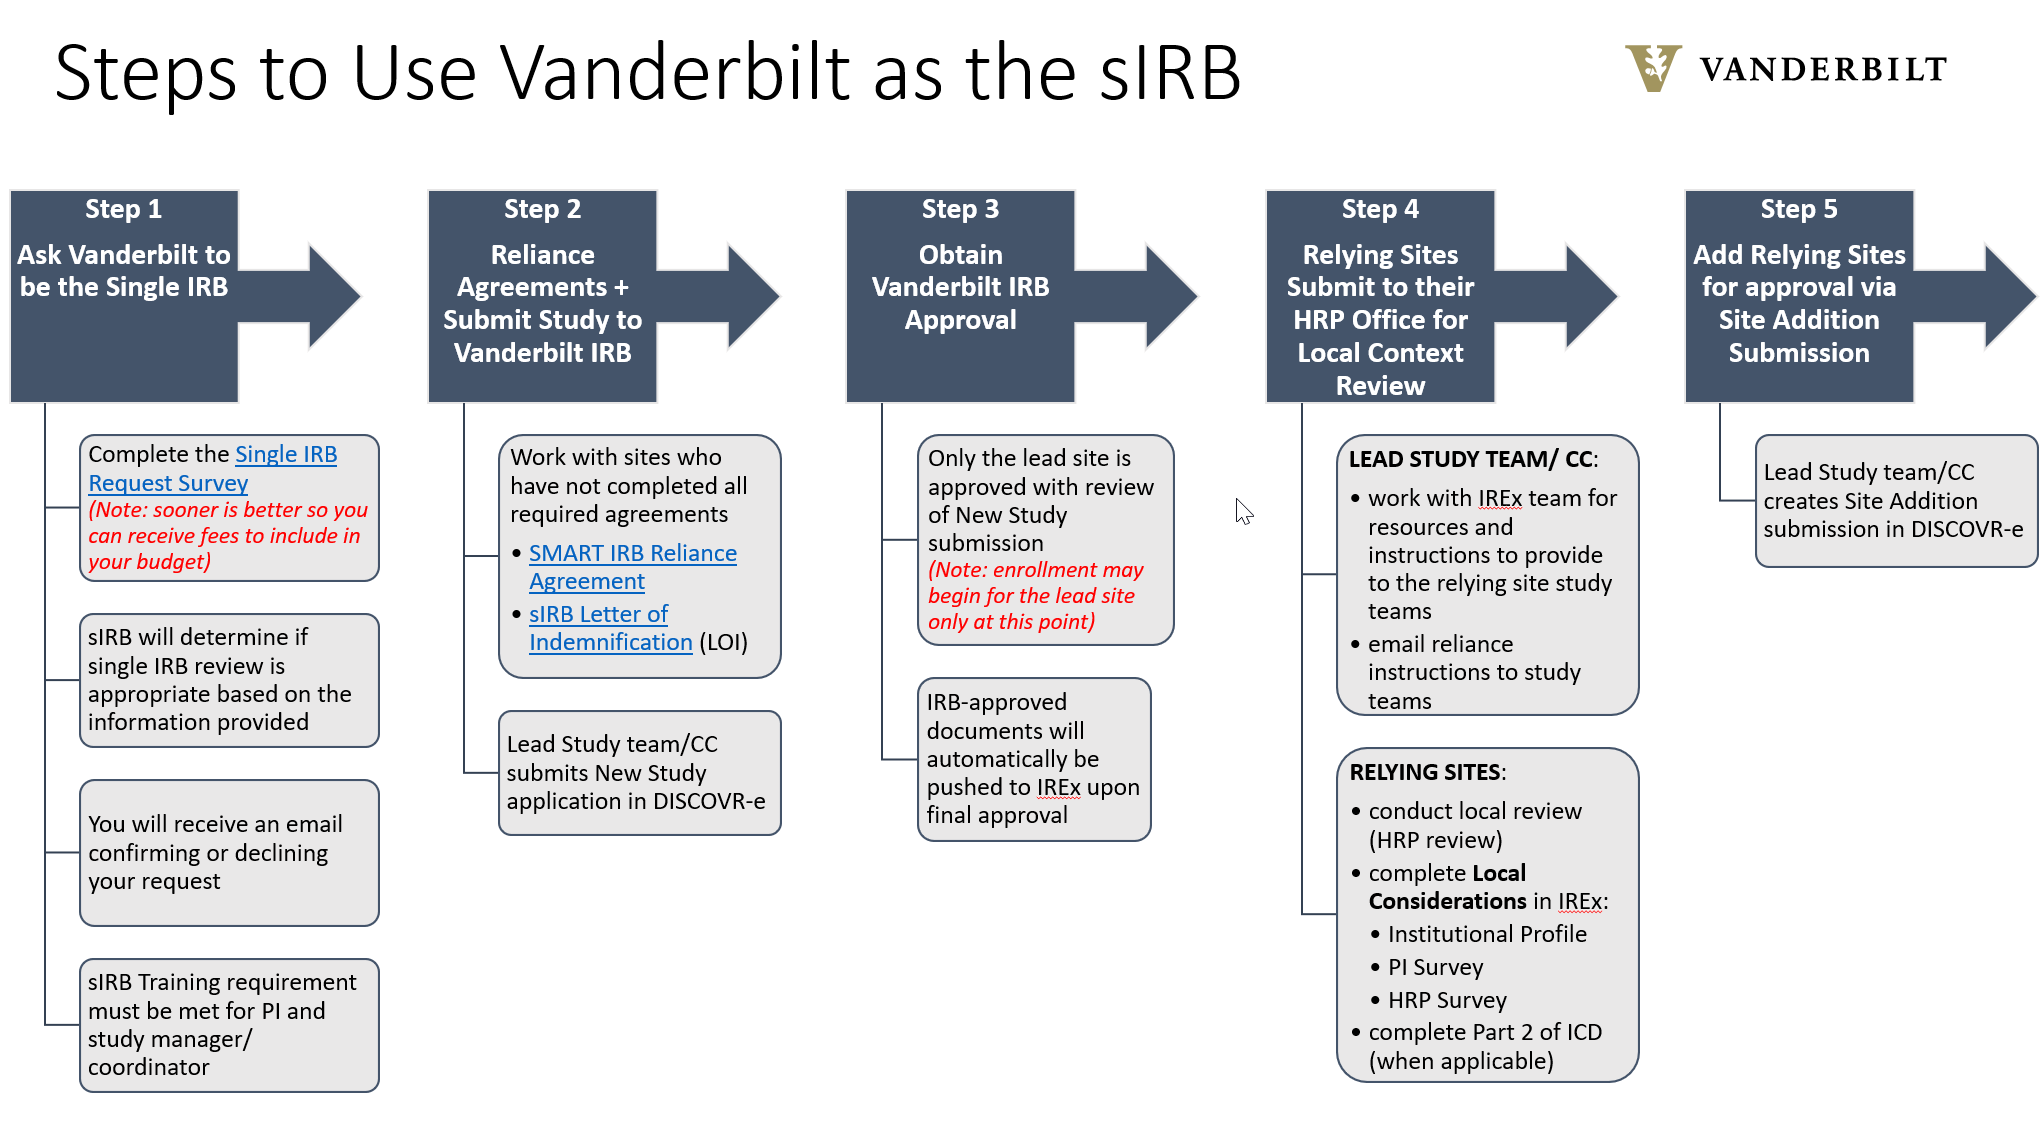 Steps to Use Vanderbilt as the SIRB